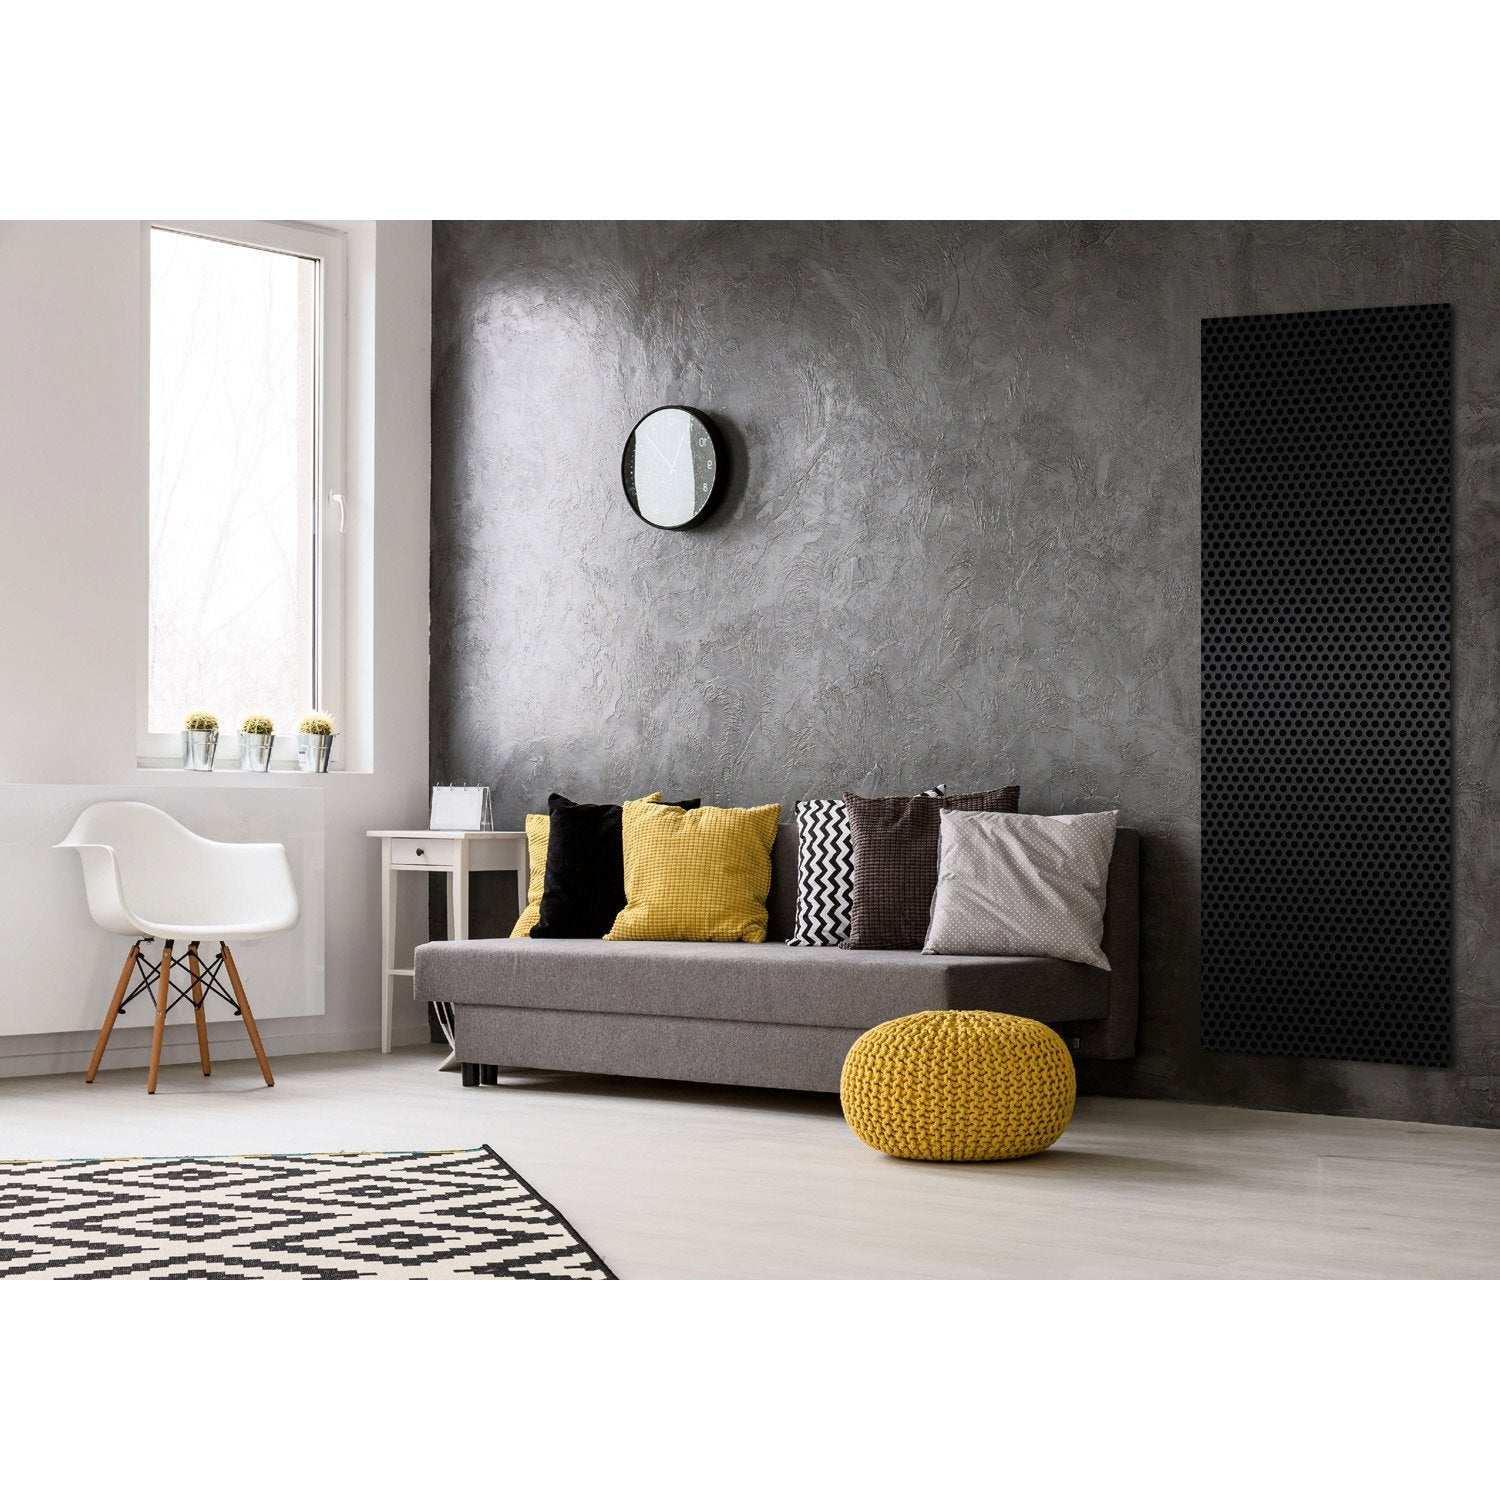 radiateur lectrique rayonnement decowatt velours noir. Black Bedroom Furniture Sets. Home Design Ideas